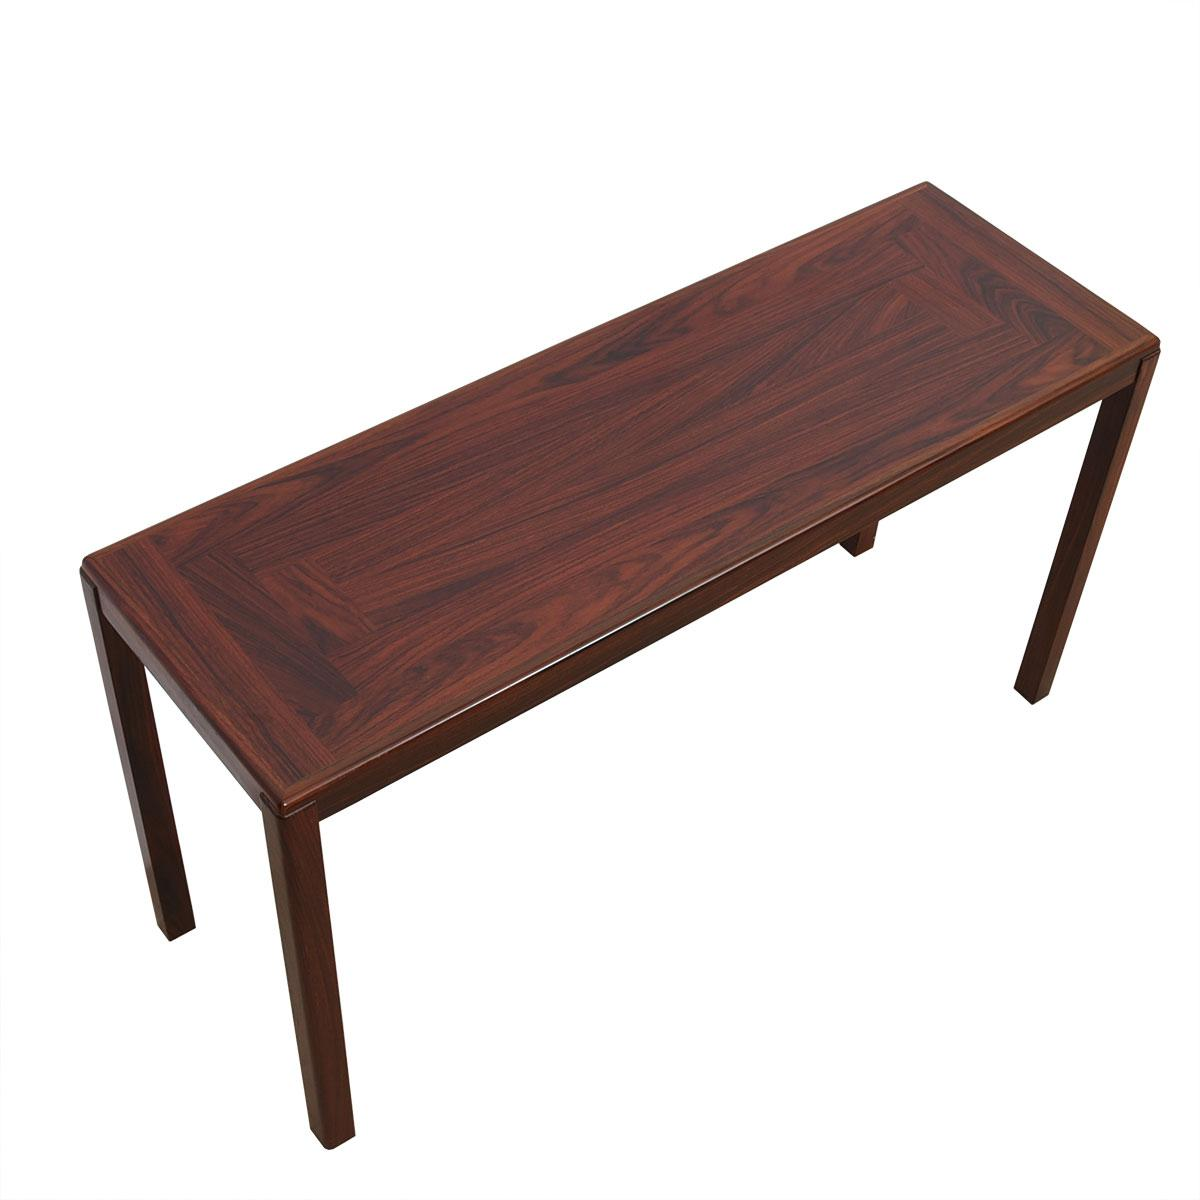 Danish Modern Rosewood Desk / Console / Sofa Table